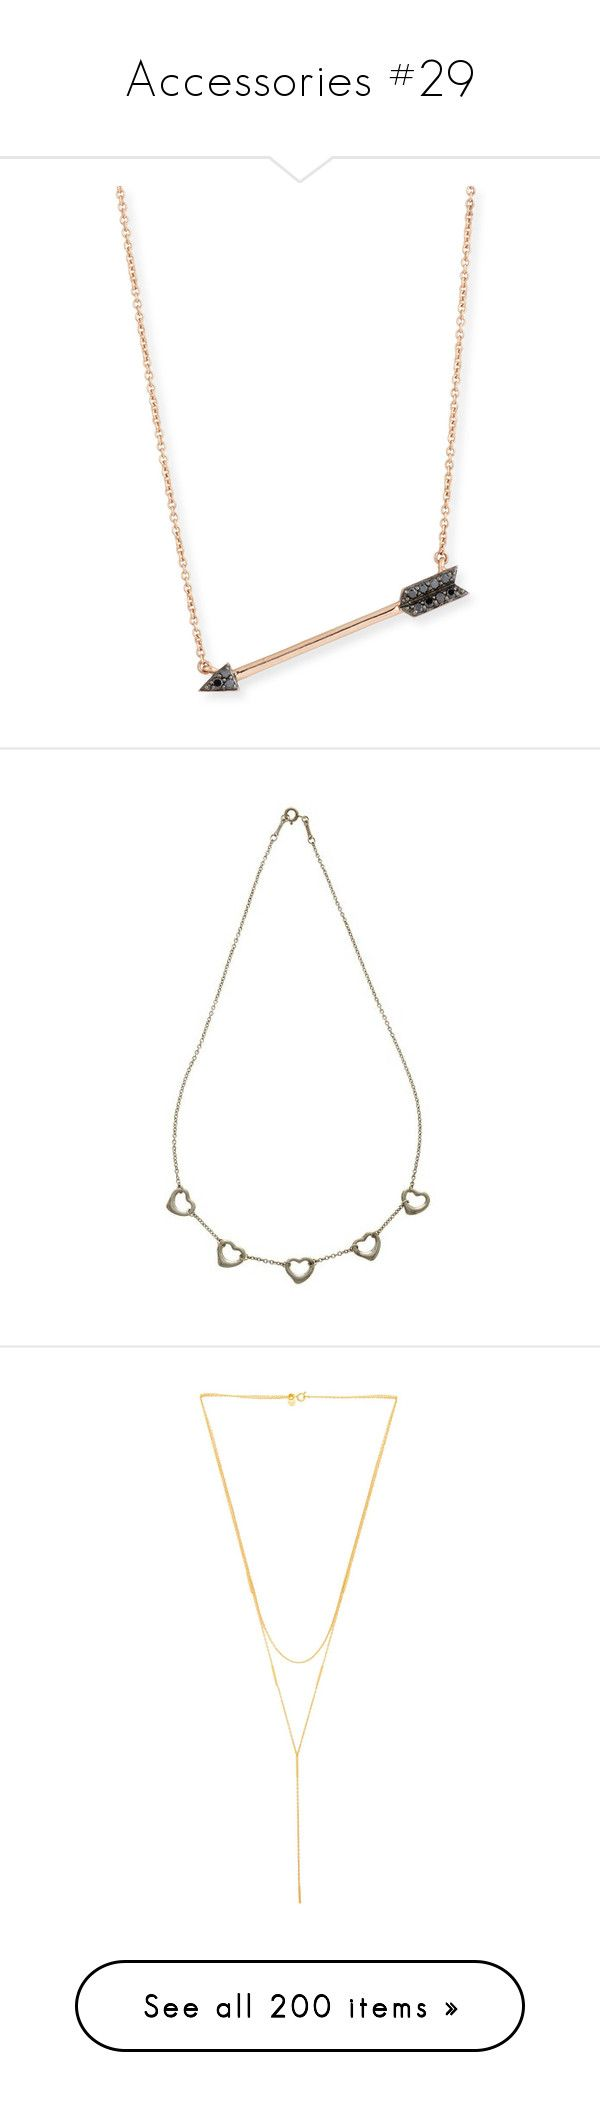 """Accessories #29"" by emma-oloughlin ❤ liked on Polyvore featuring jewelry, necklaces, jewelry necklaces, rose gold, rose gold necklace, black diamond pendant necklace, 14k necklace, rose gold pendant, pendant necklaces and tiffany co necklace"